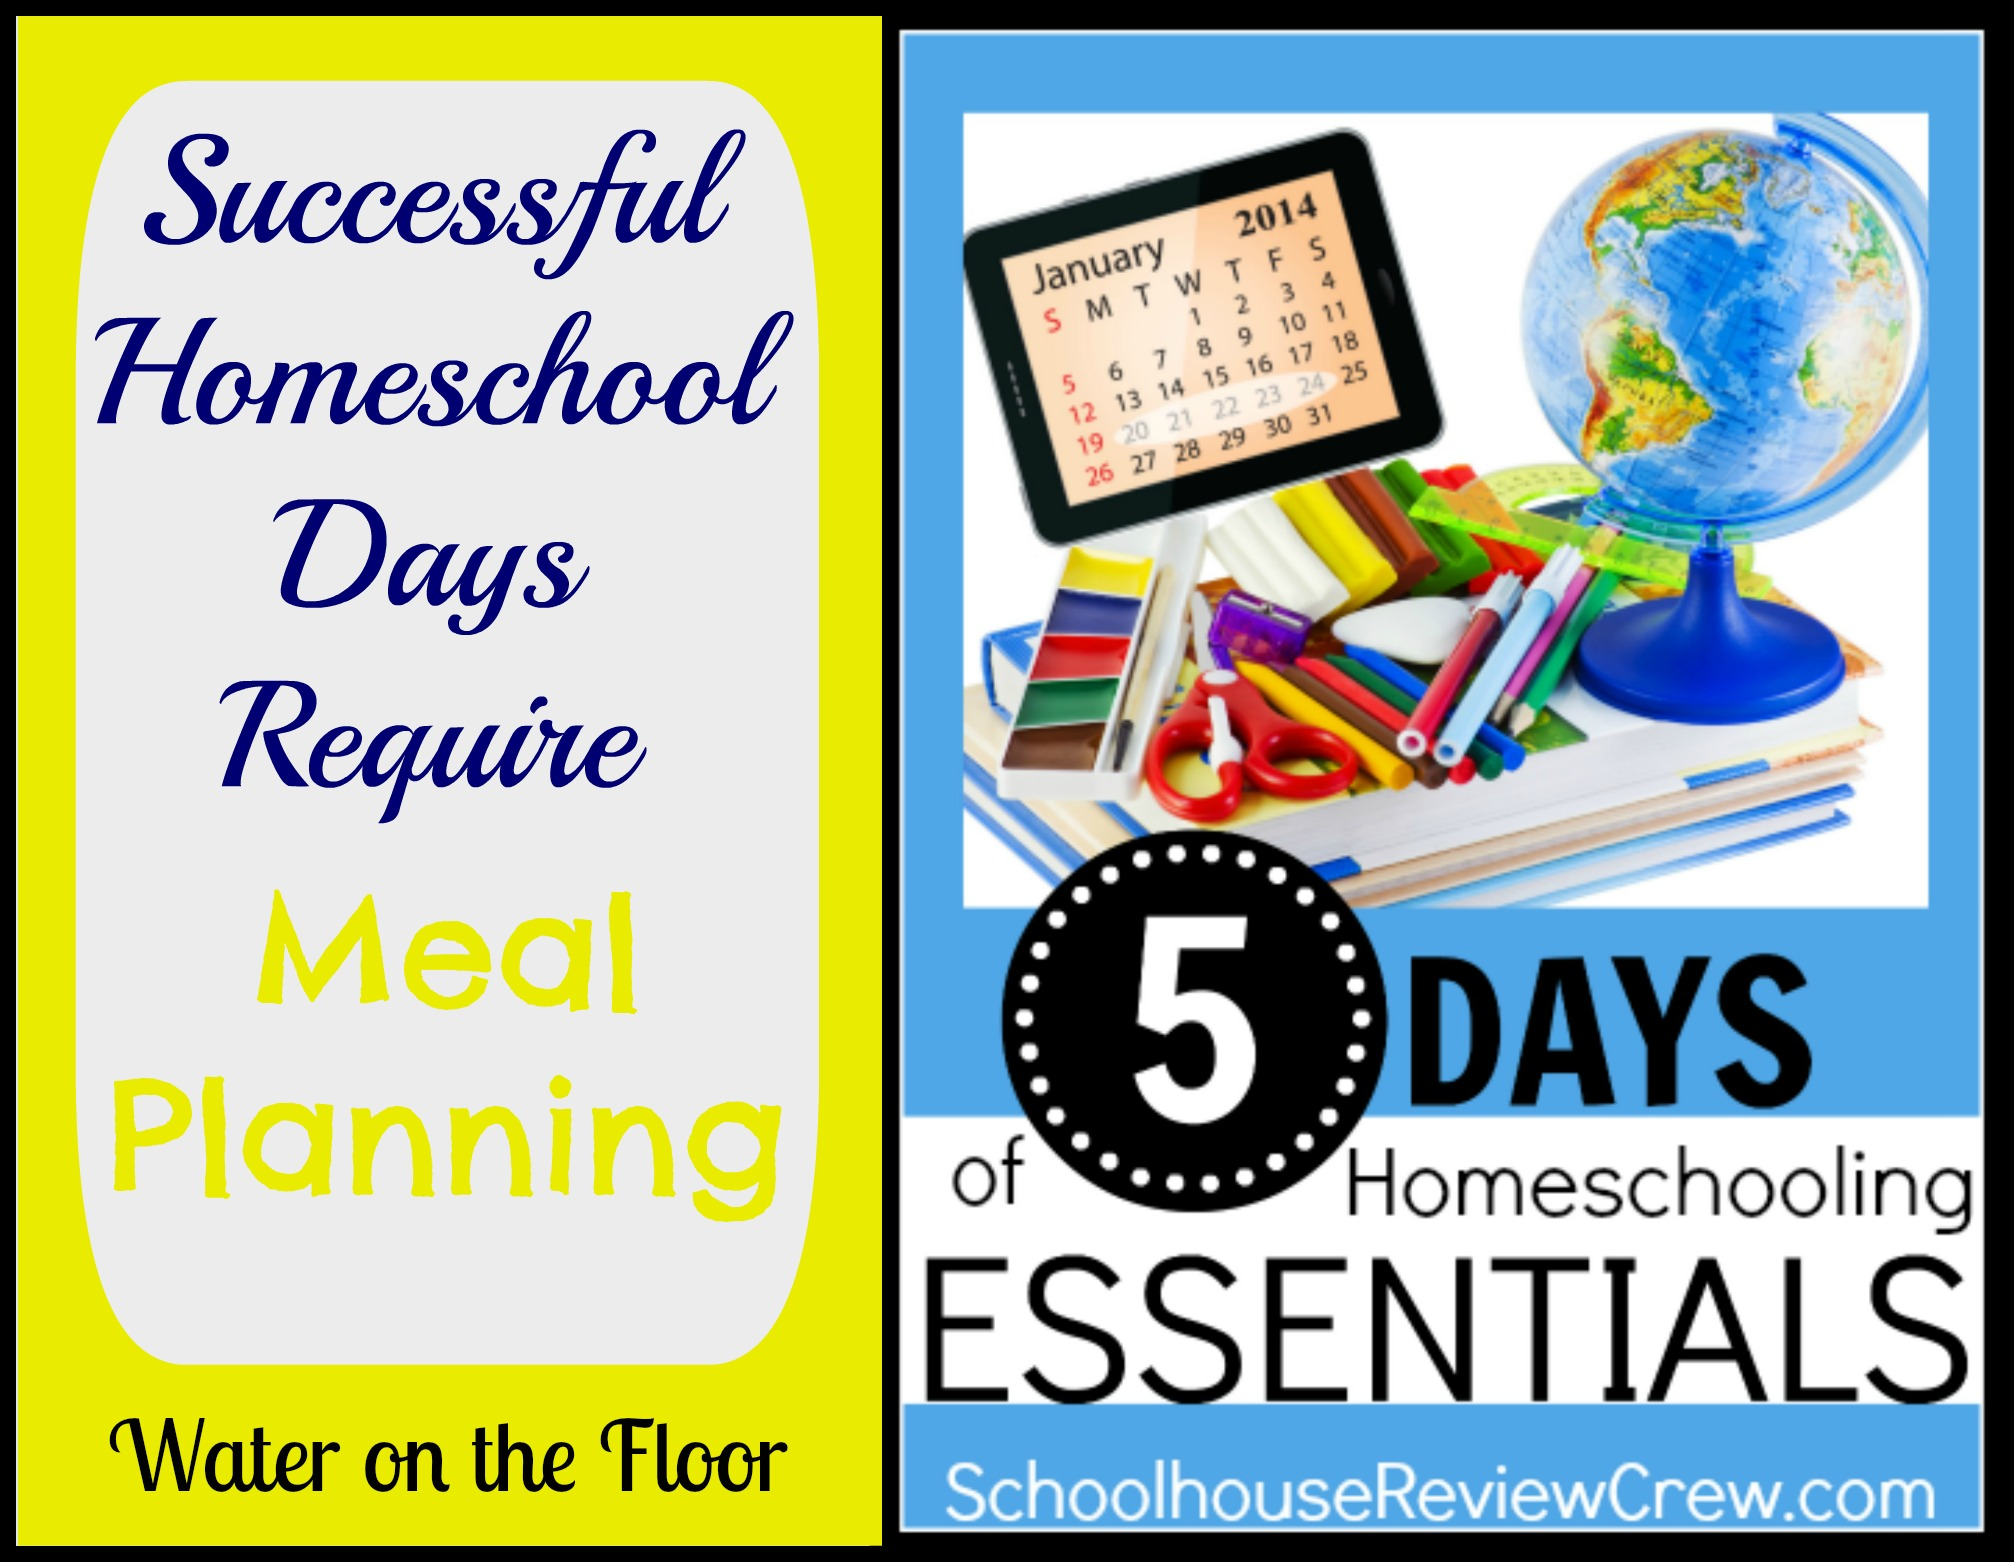 Successful Homeschool Days Require Meal Planning 5 Days